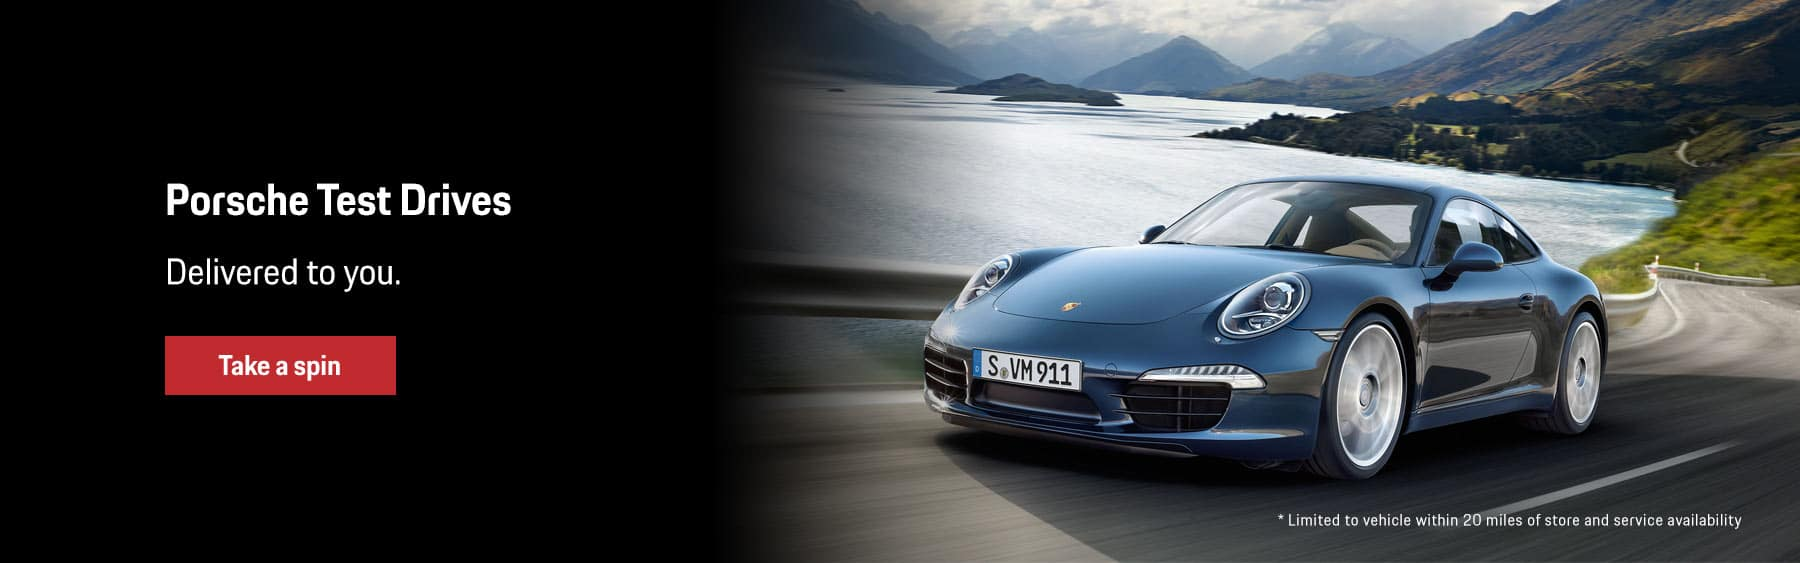 Porsche Test Drives Delivered to You